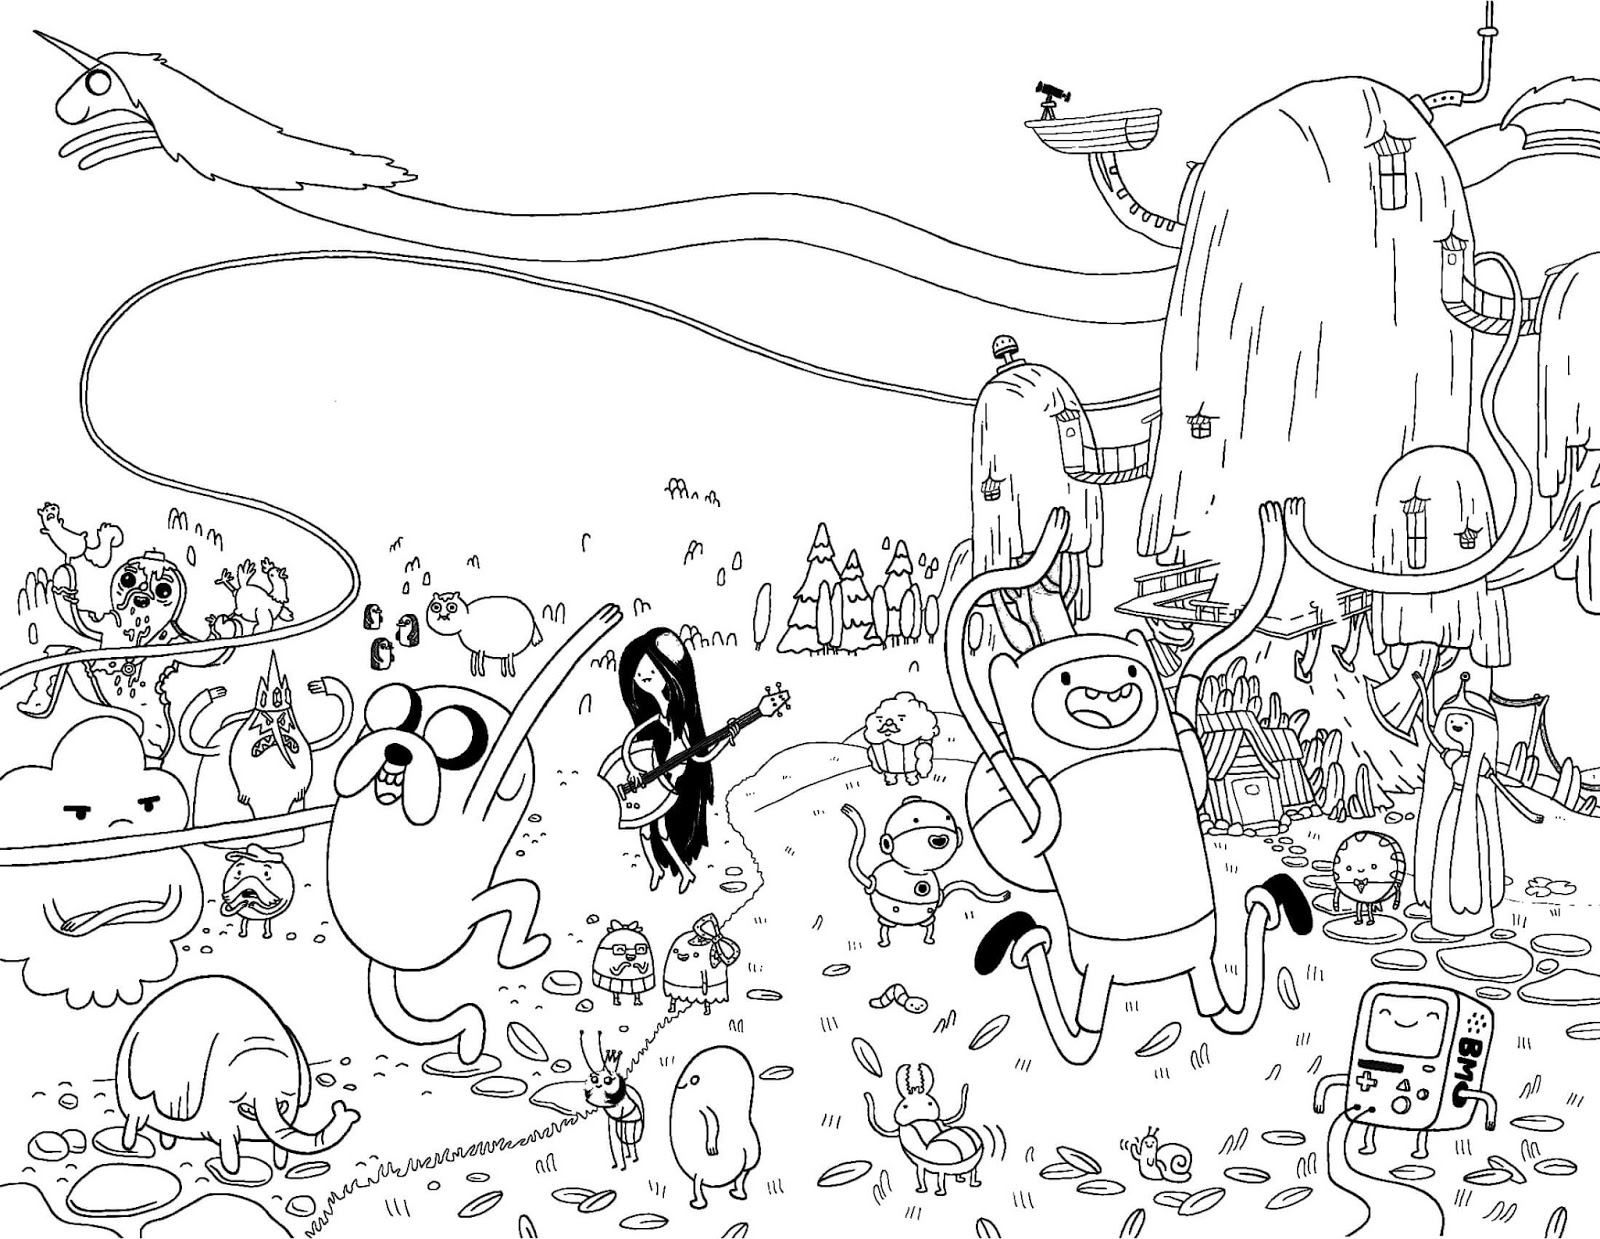 Adventure Time Coloring Pages To Print For Free